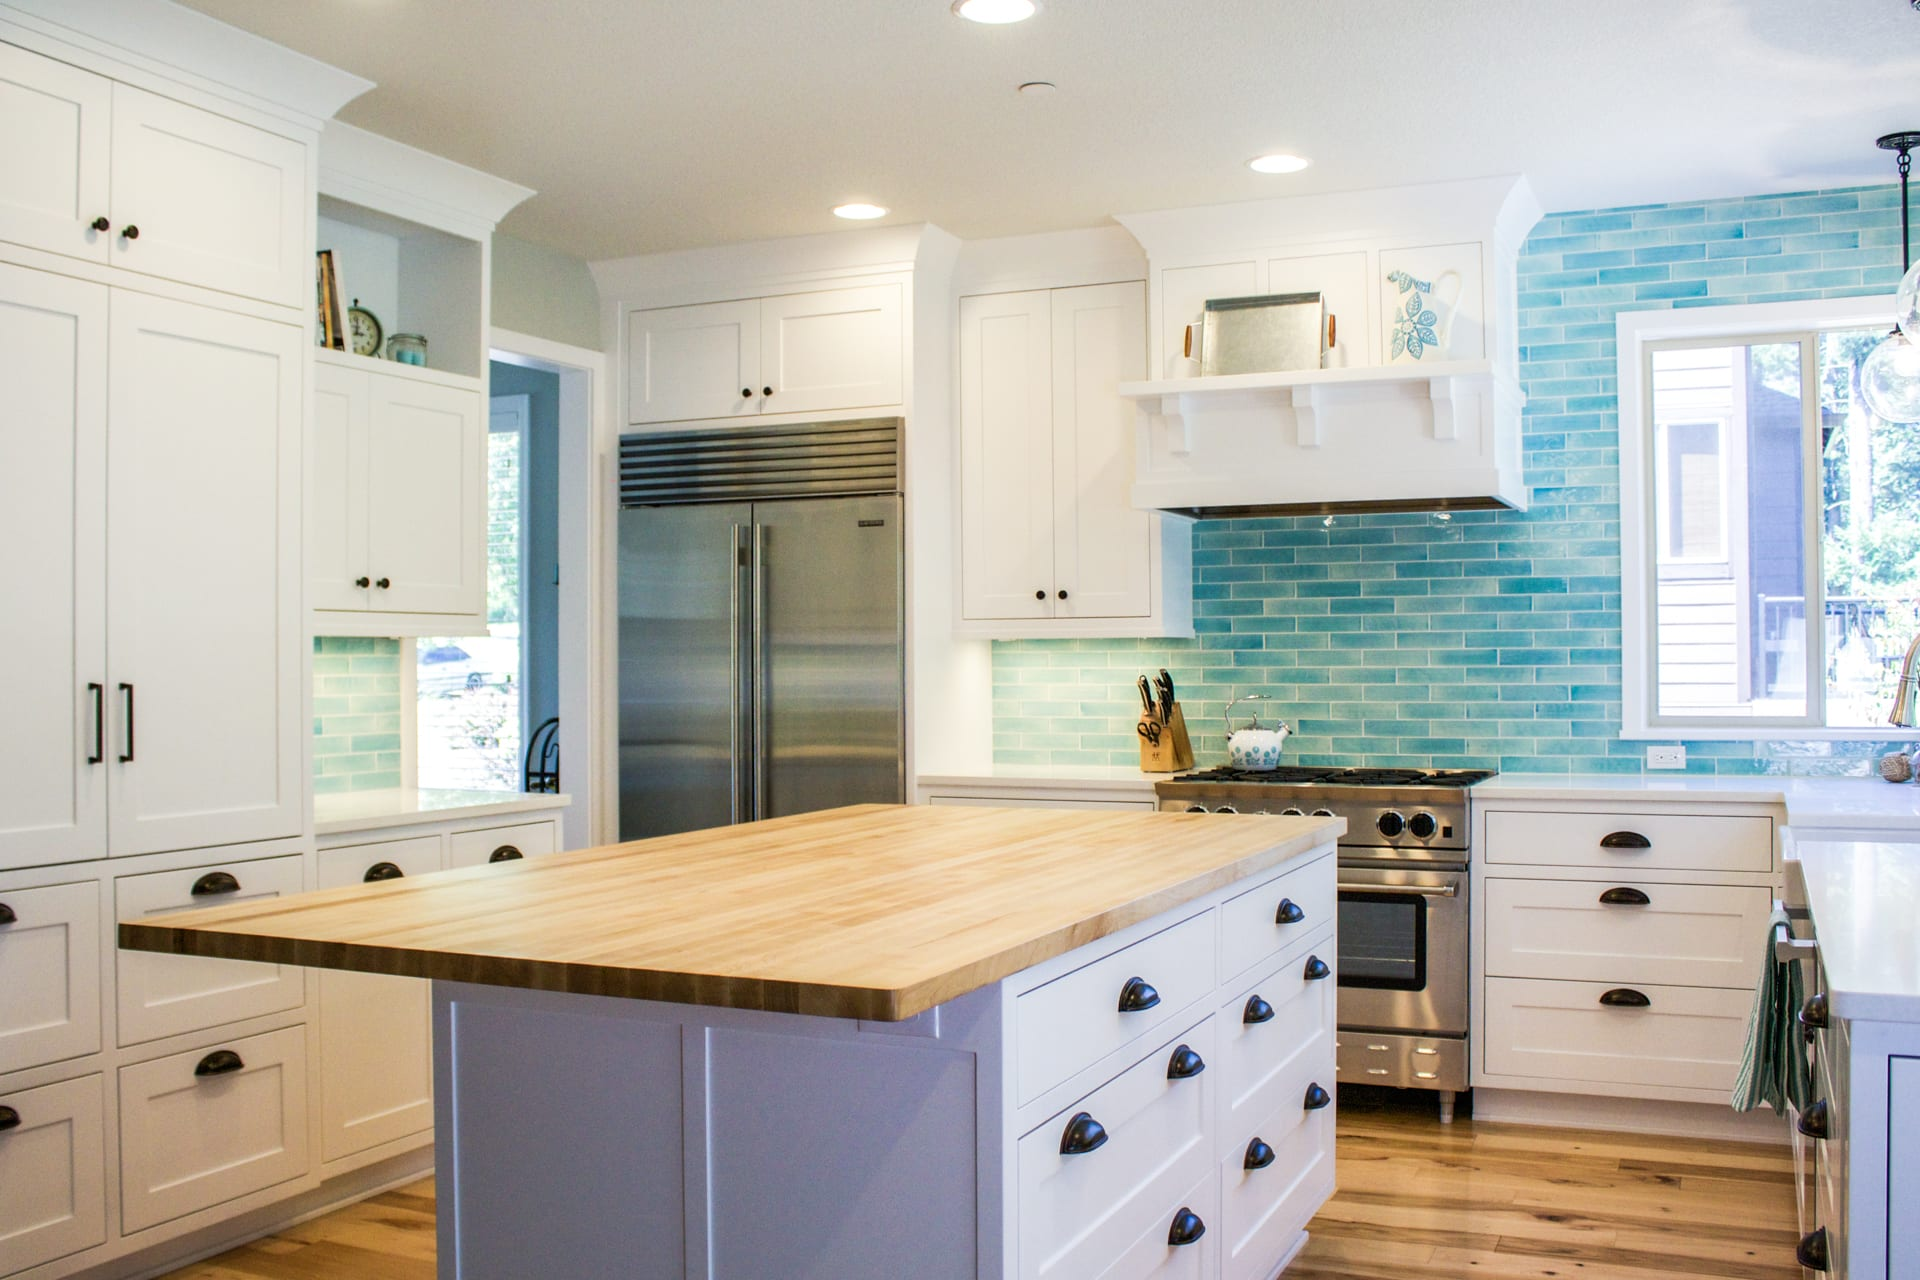 Custom Designed Kitchen With White Cabinets And Bold Blue